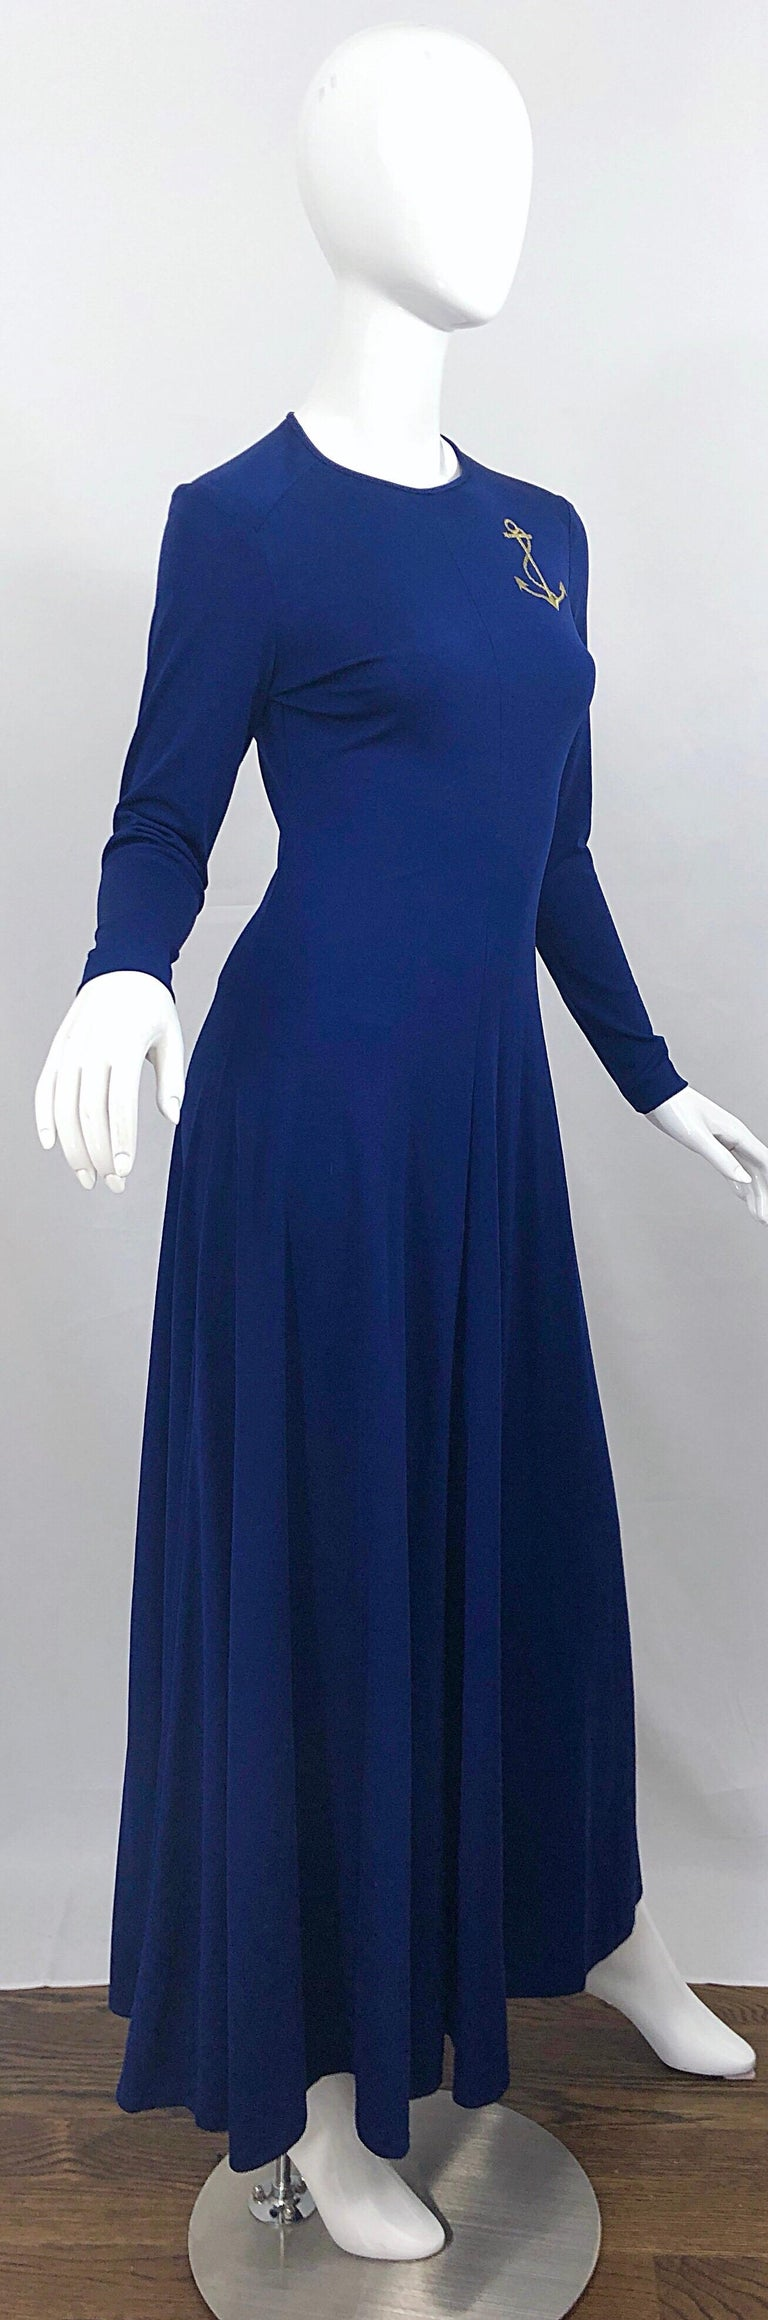 Amazing 1970s Nautical Navy Blue + Gold Anchor Patch Vintage Jersey maxi Dress For Sale 1